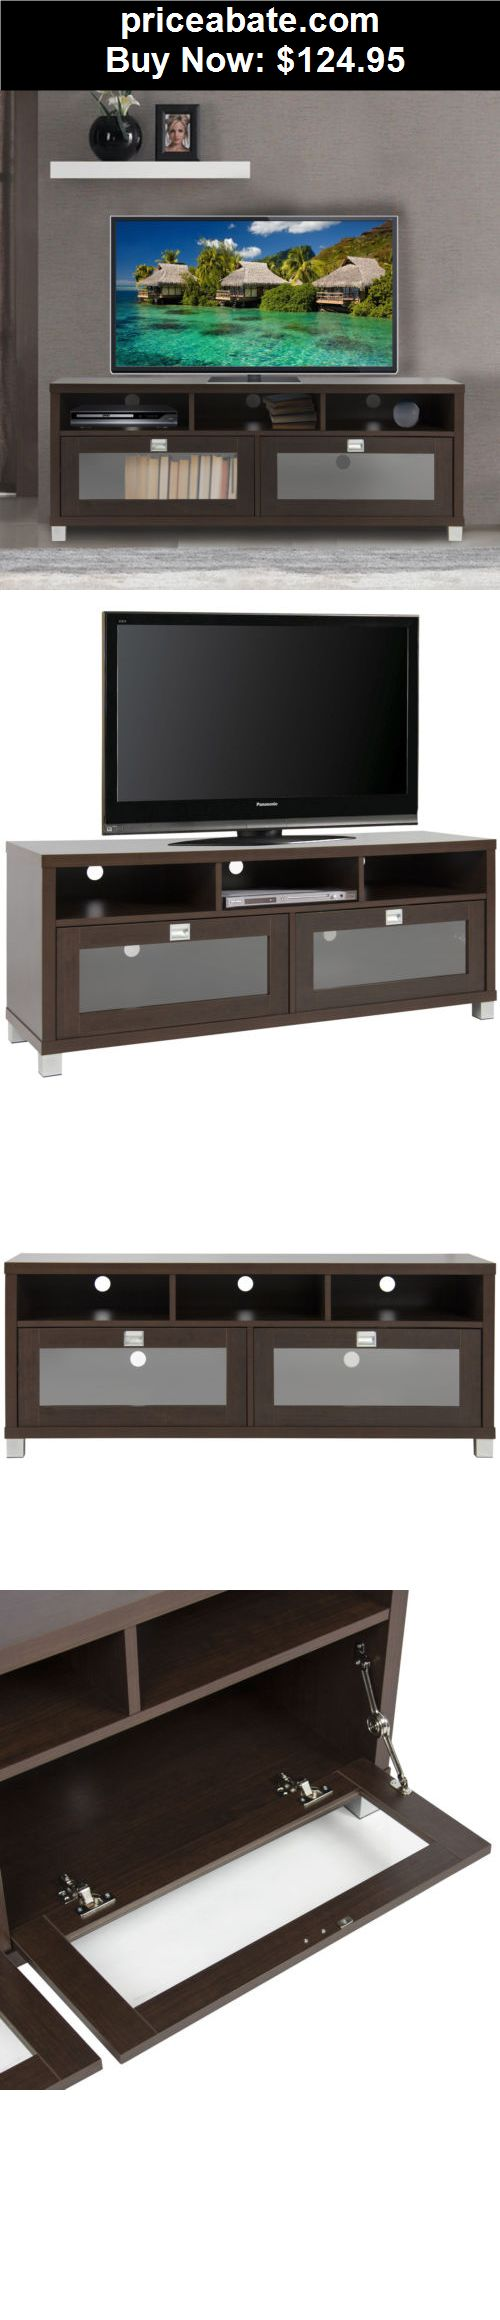 Furniture: TV Stand Cabinet Storage Home Entertainment Furniture Home Theater Media Center - BUY IT NOW ONLY $124.95